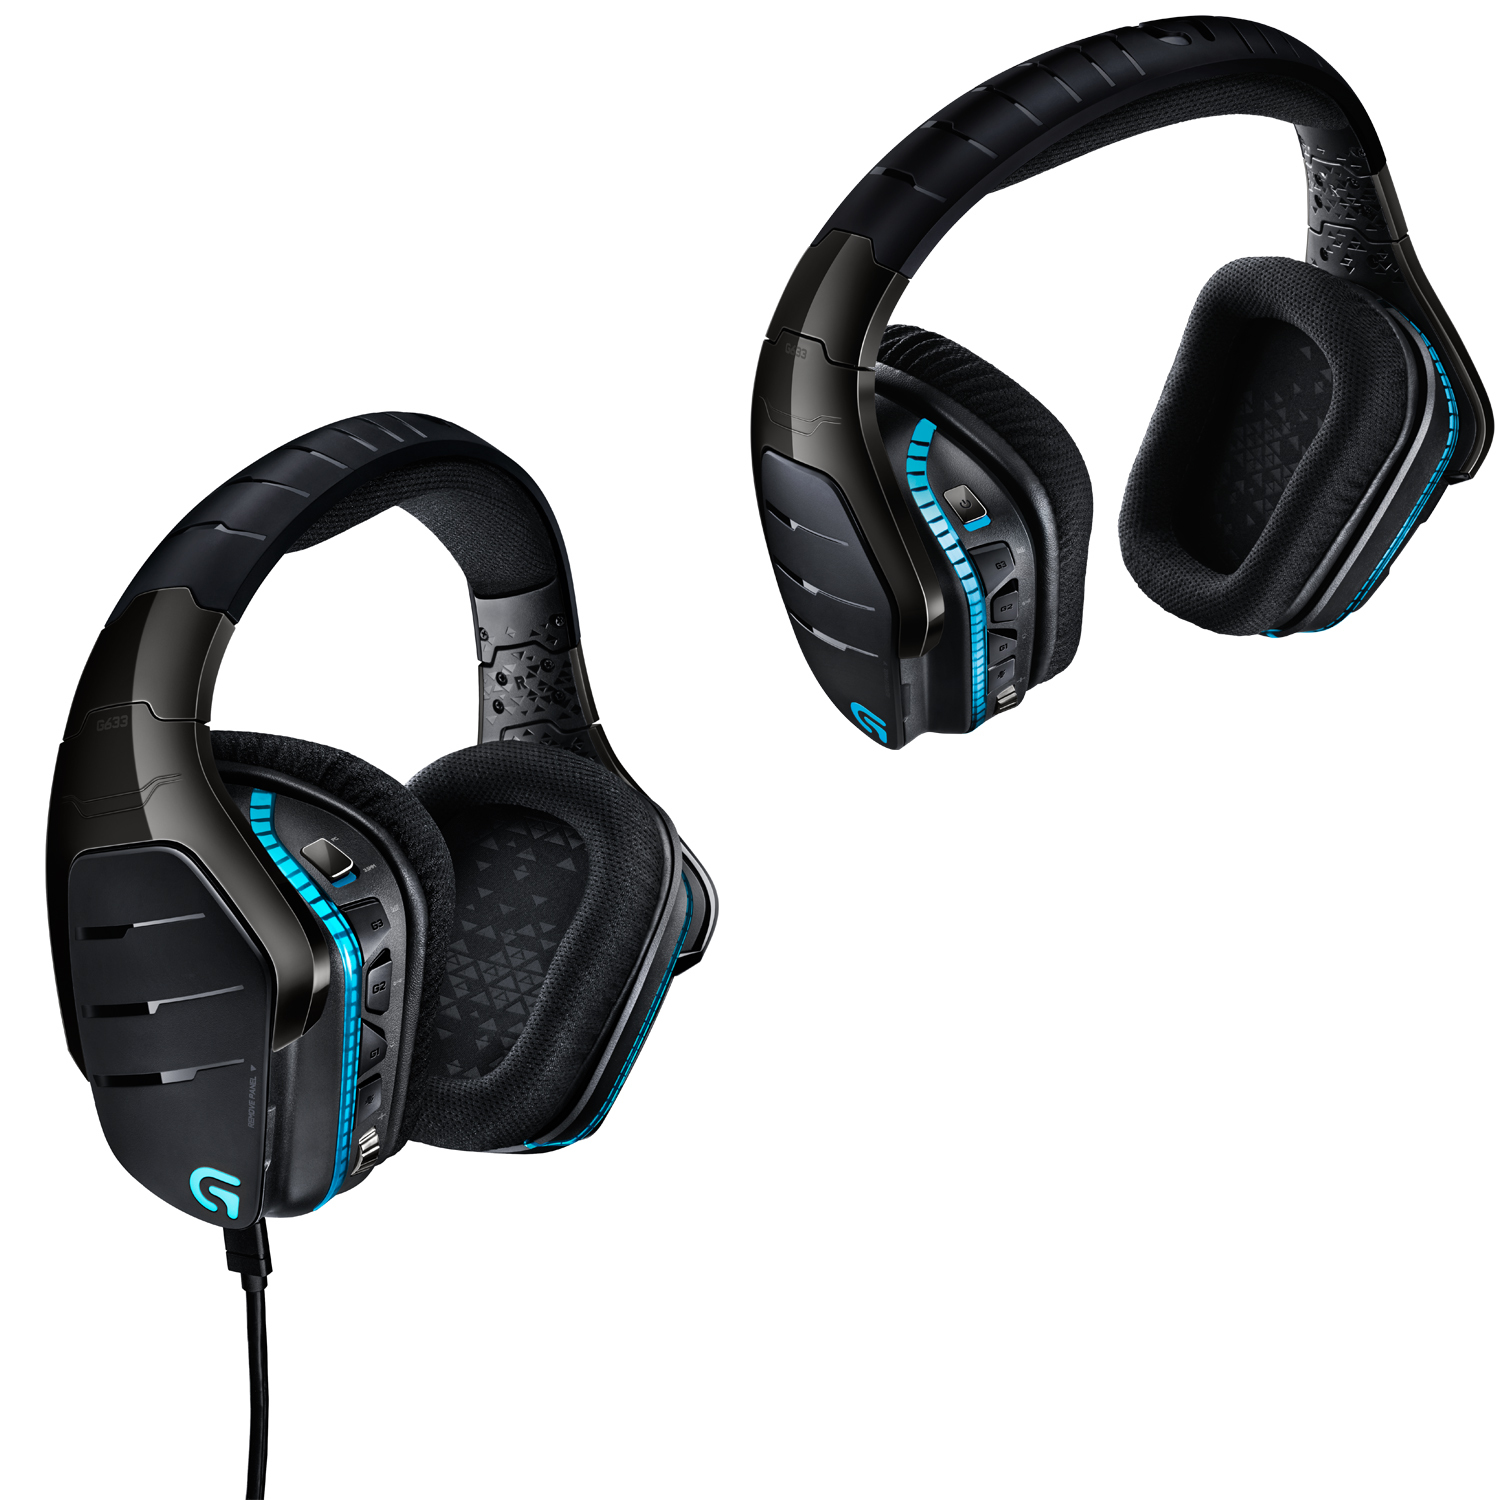 Logitech G Introduces New Gaming Headphones | Logitech